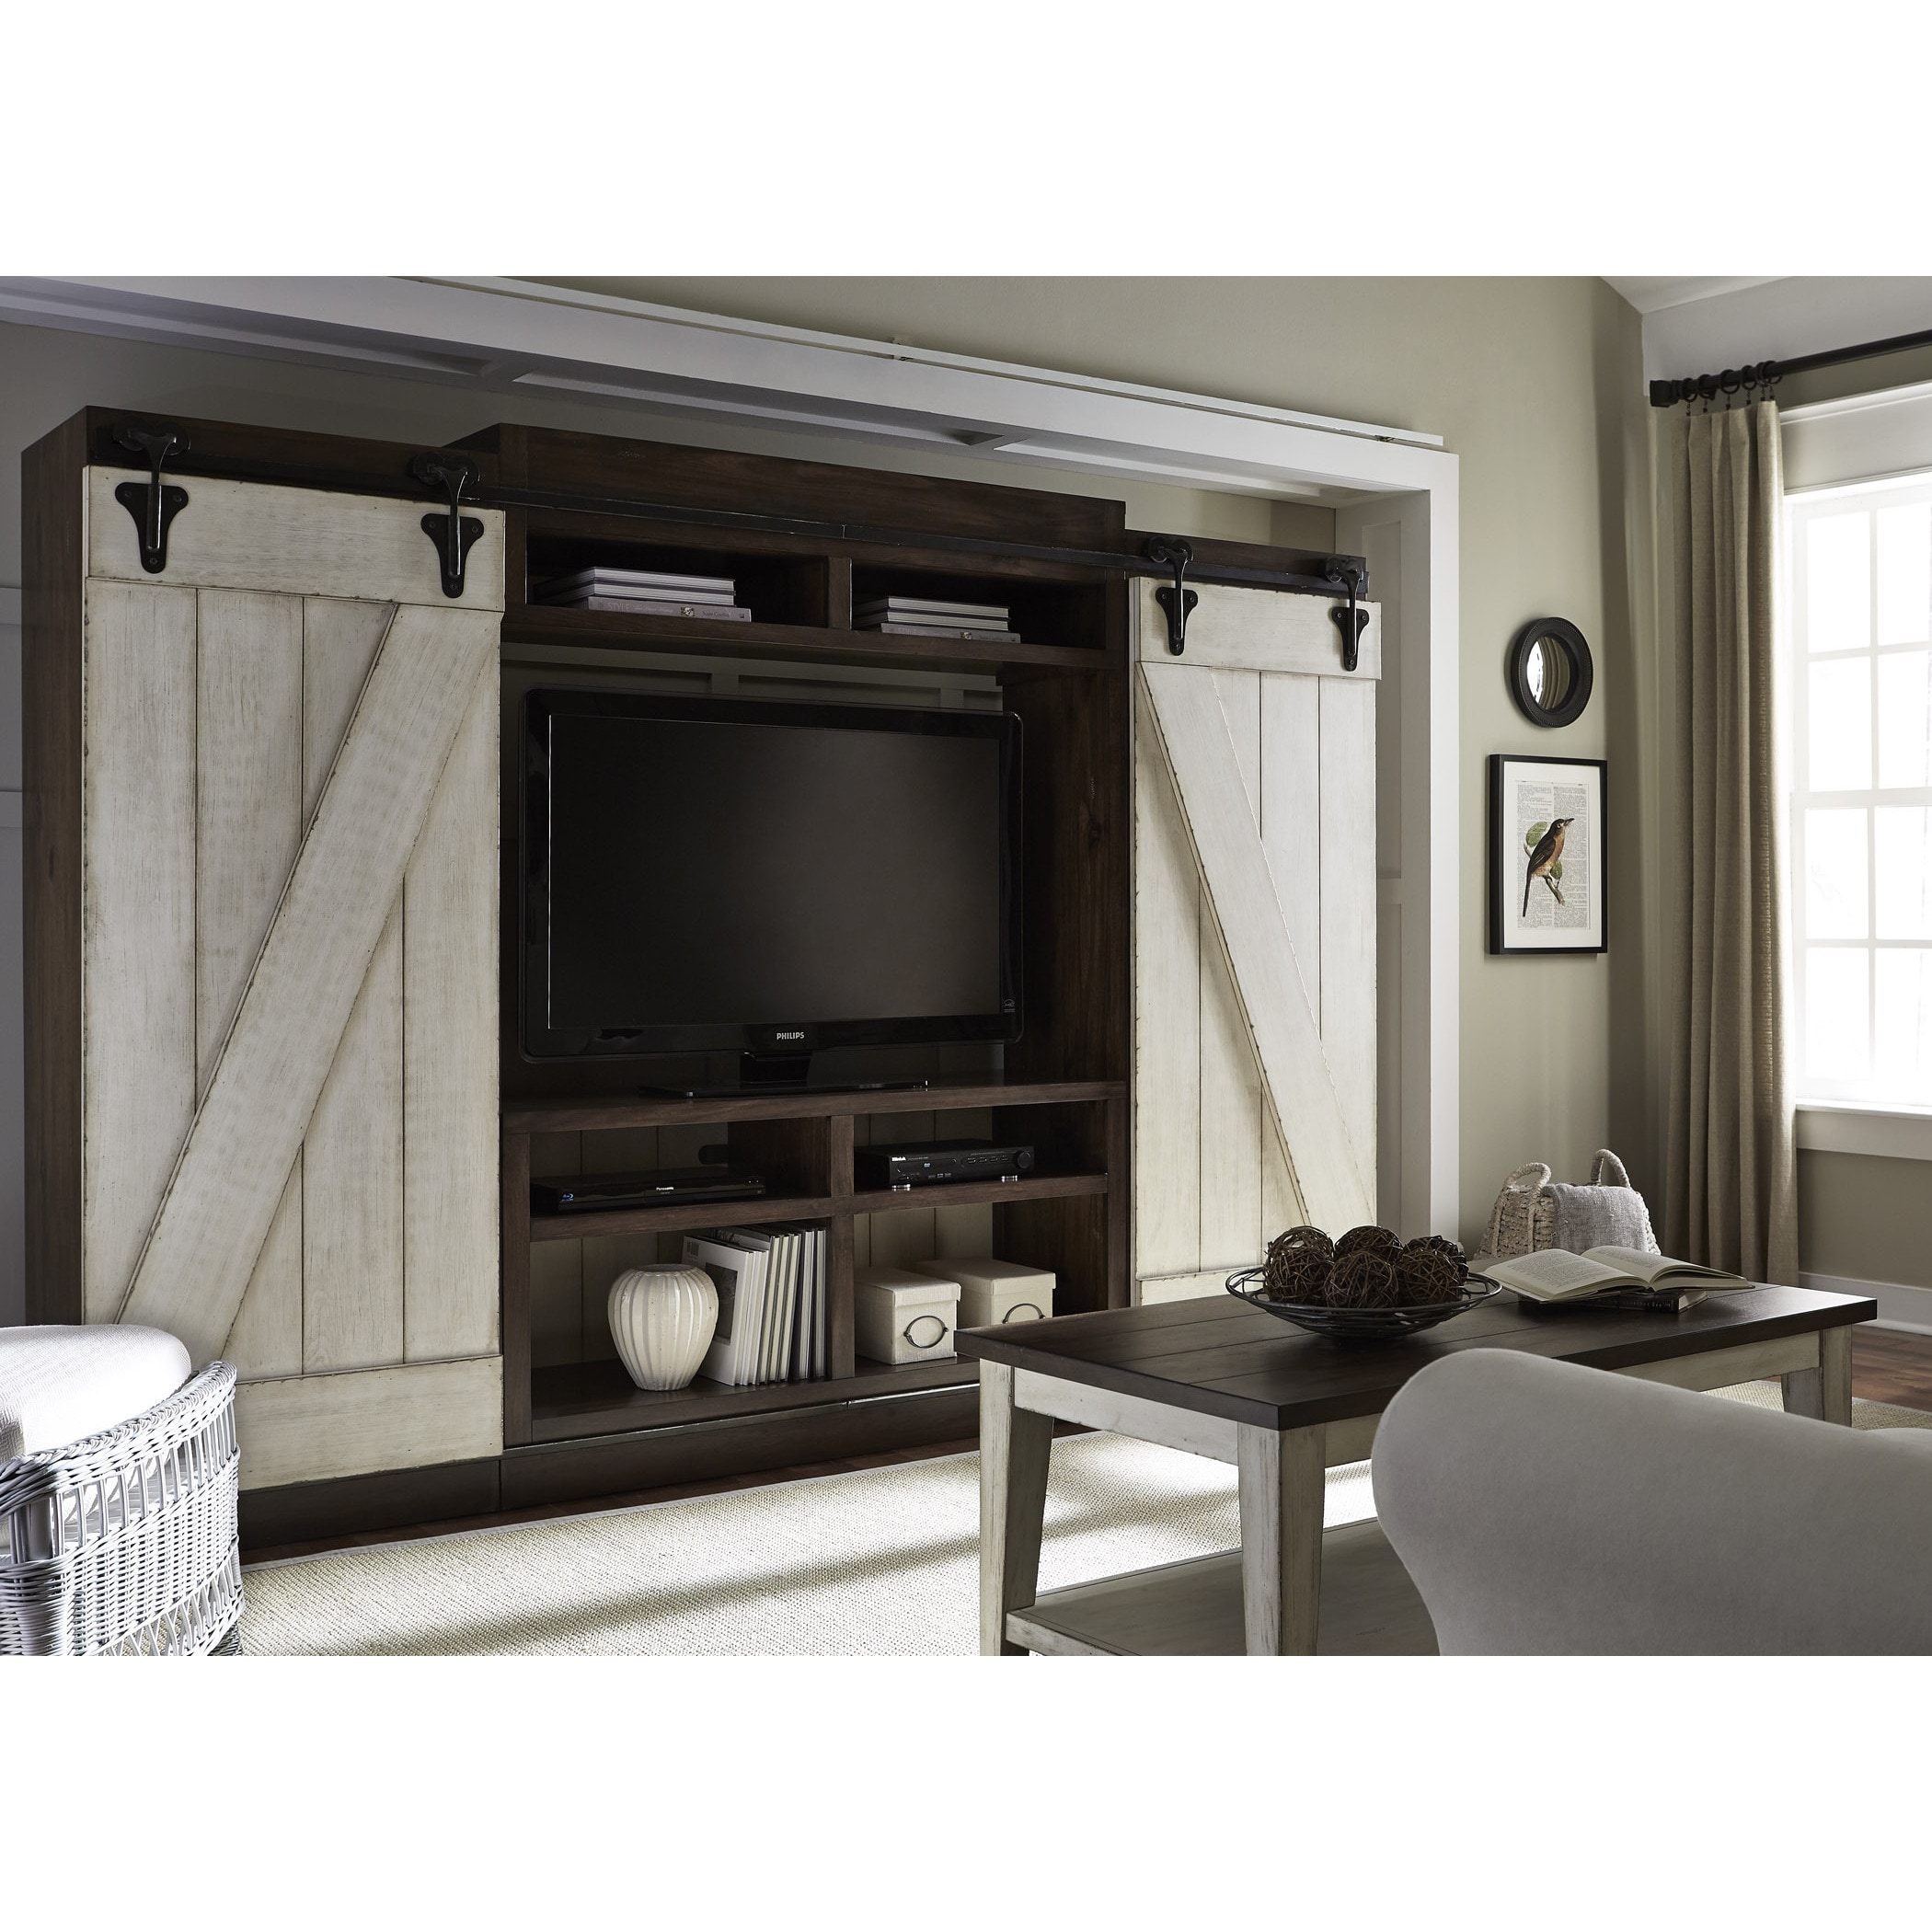 Shop lancaster weathered bark and white entertainment center with piers on sale free shipping today overstock com 11375272